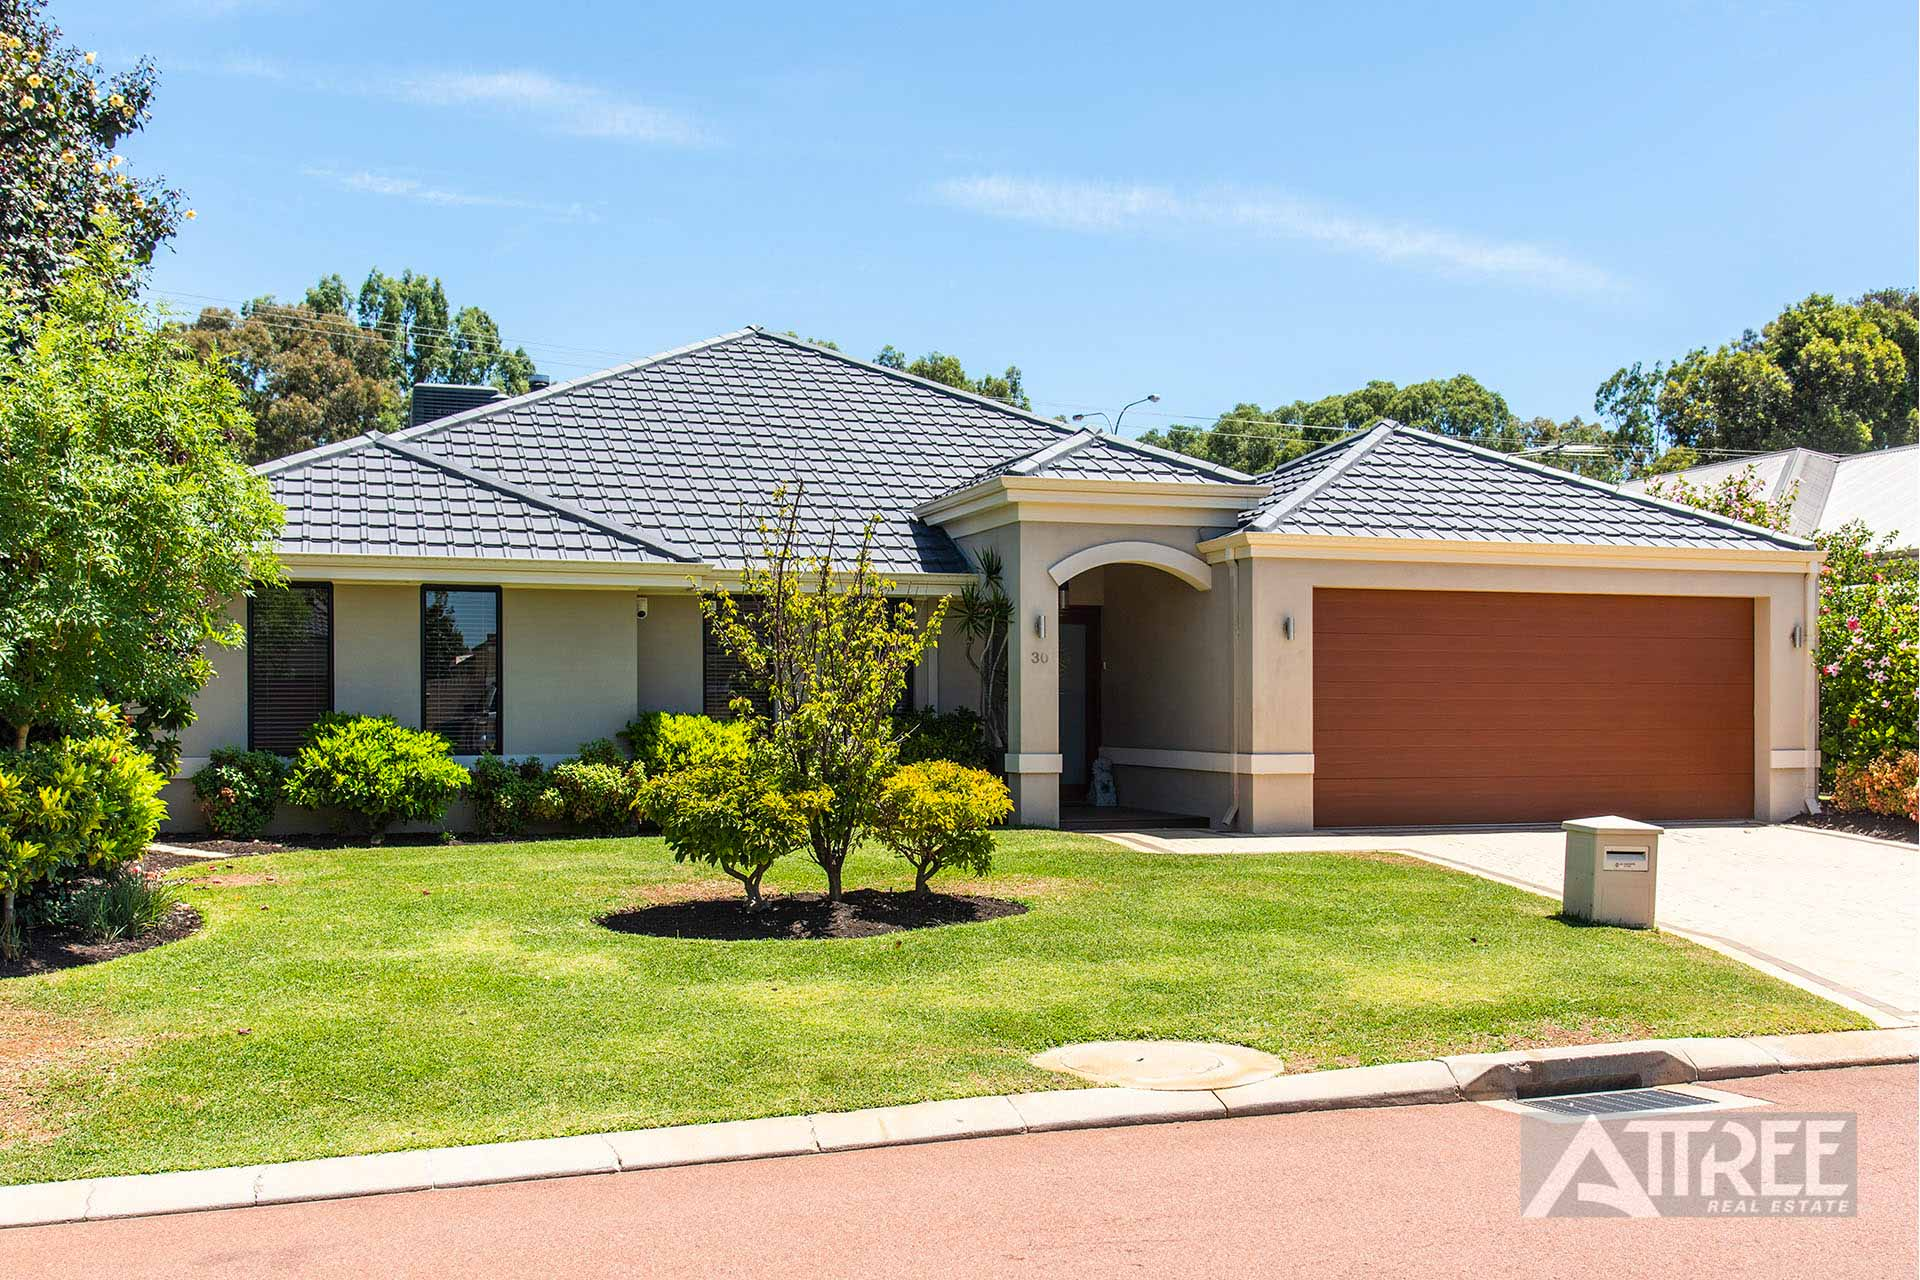 Property for sale in CANNING VALE, 30 Pebble Bush Drive : Attree Real Estate